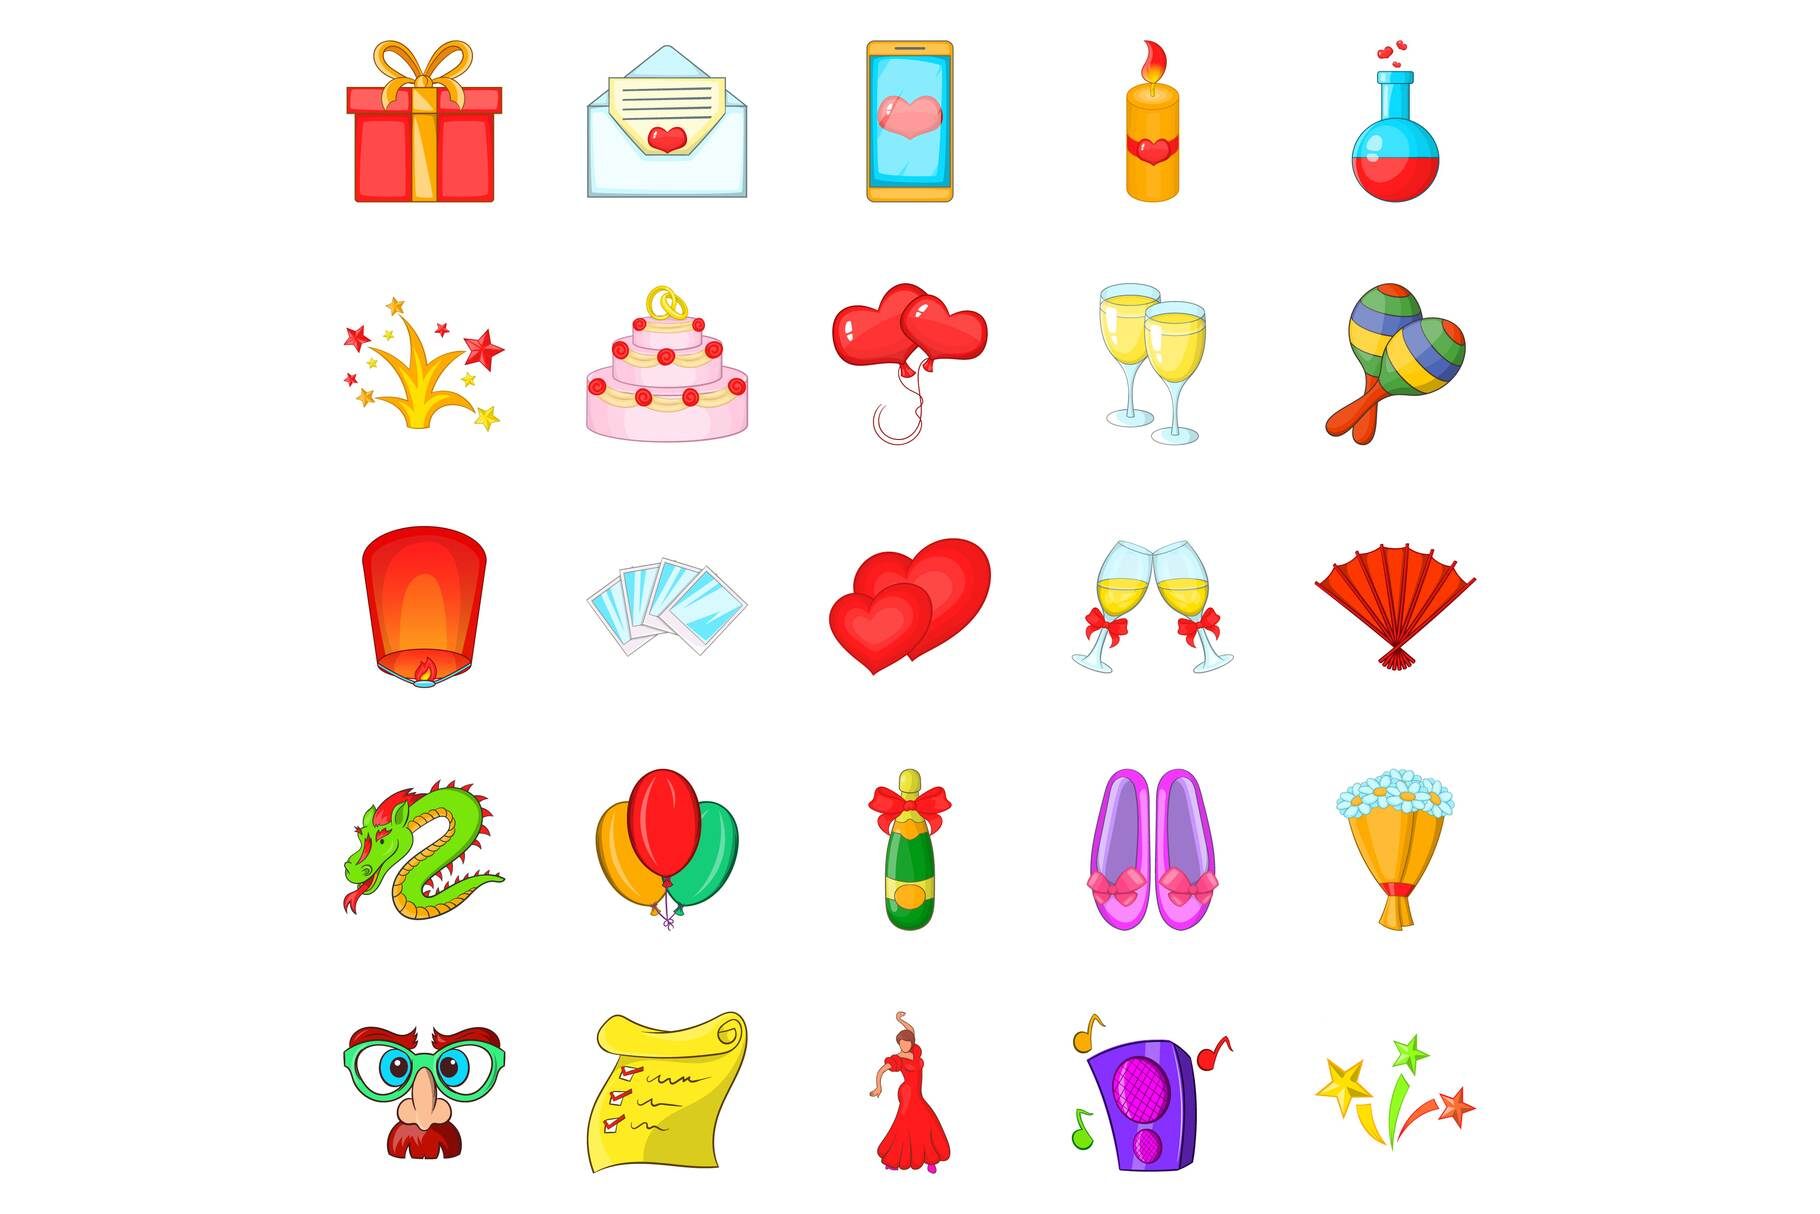 Partying icons set, cartoon style example image 1